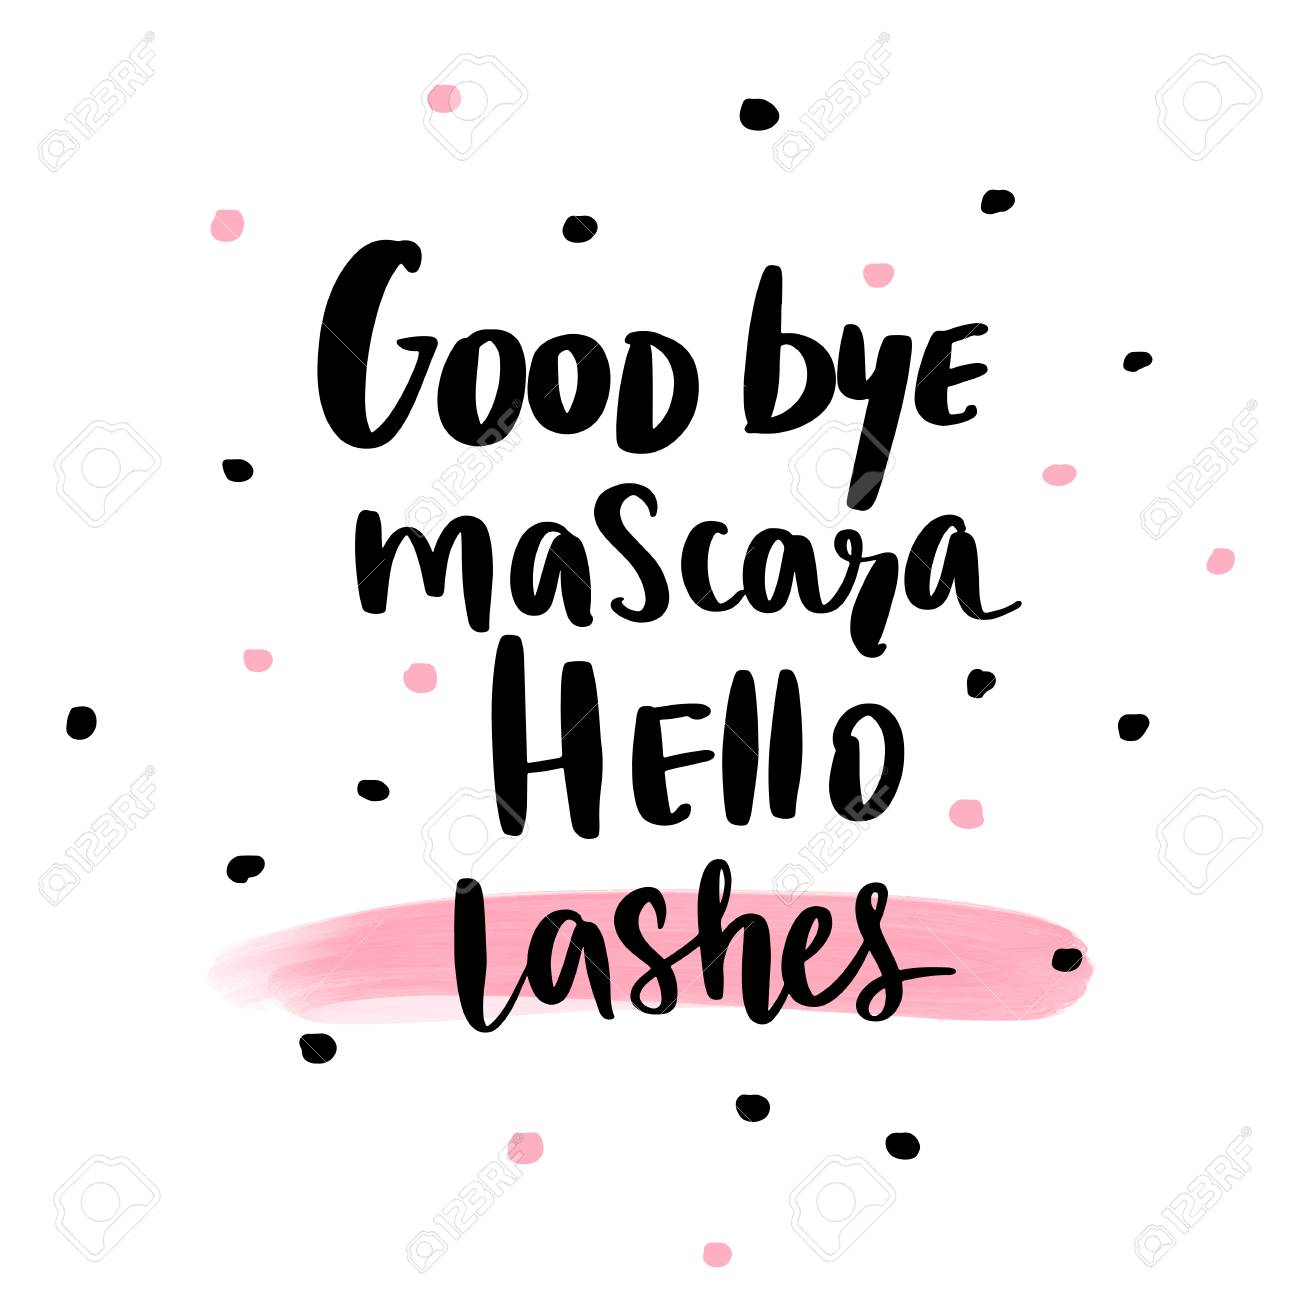 Good bye mascara, hello lashes Calligraphy phrase for gift cards,..